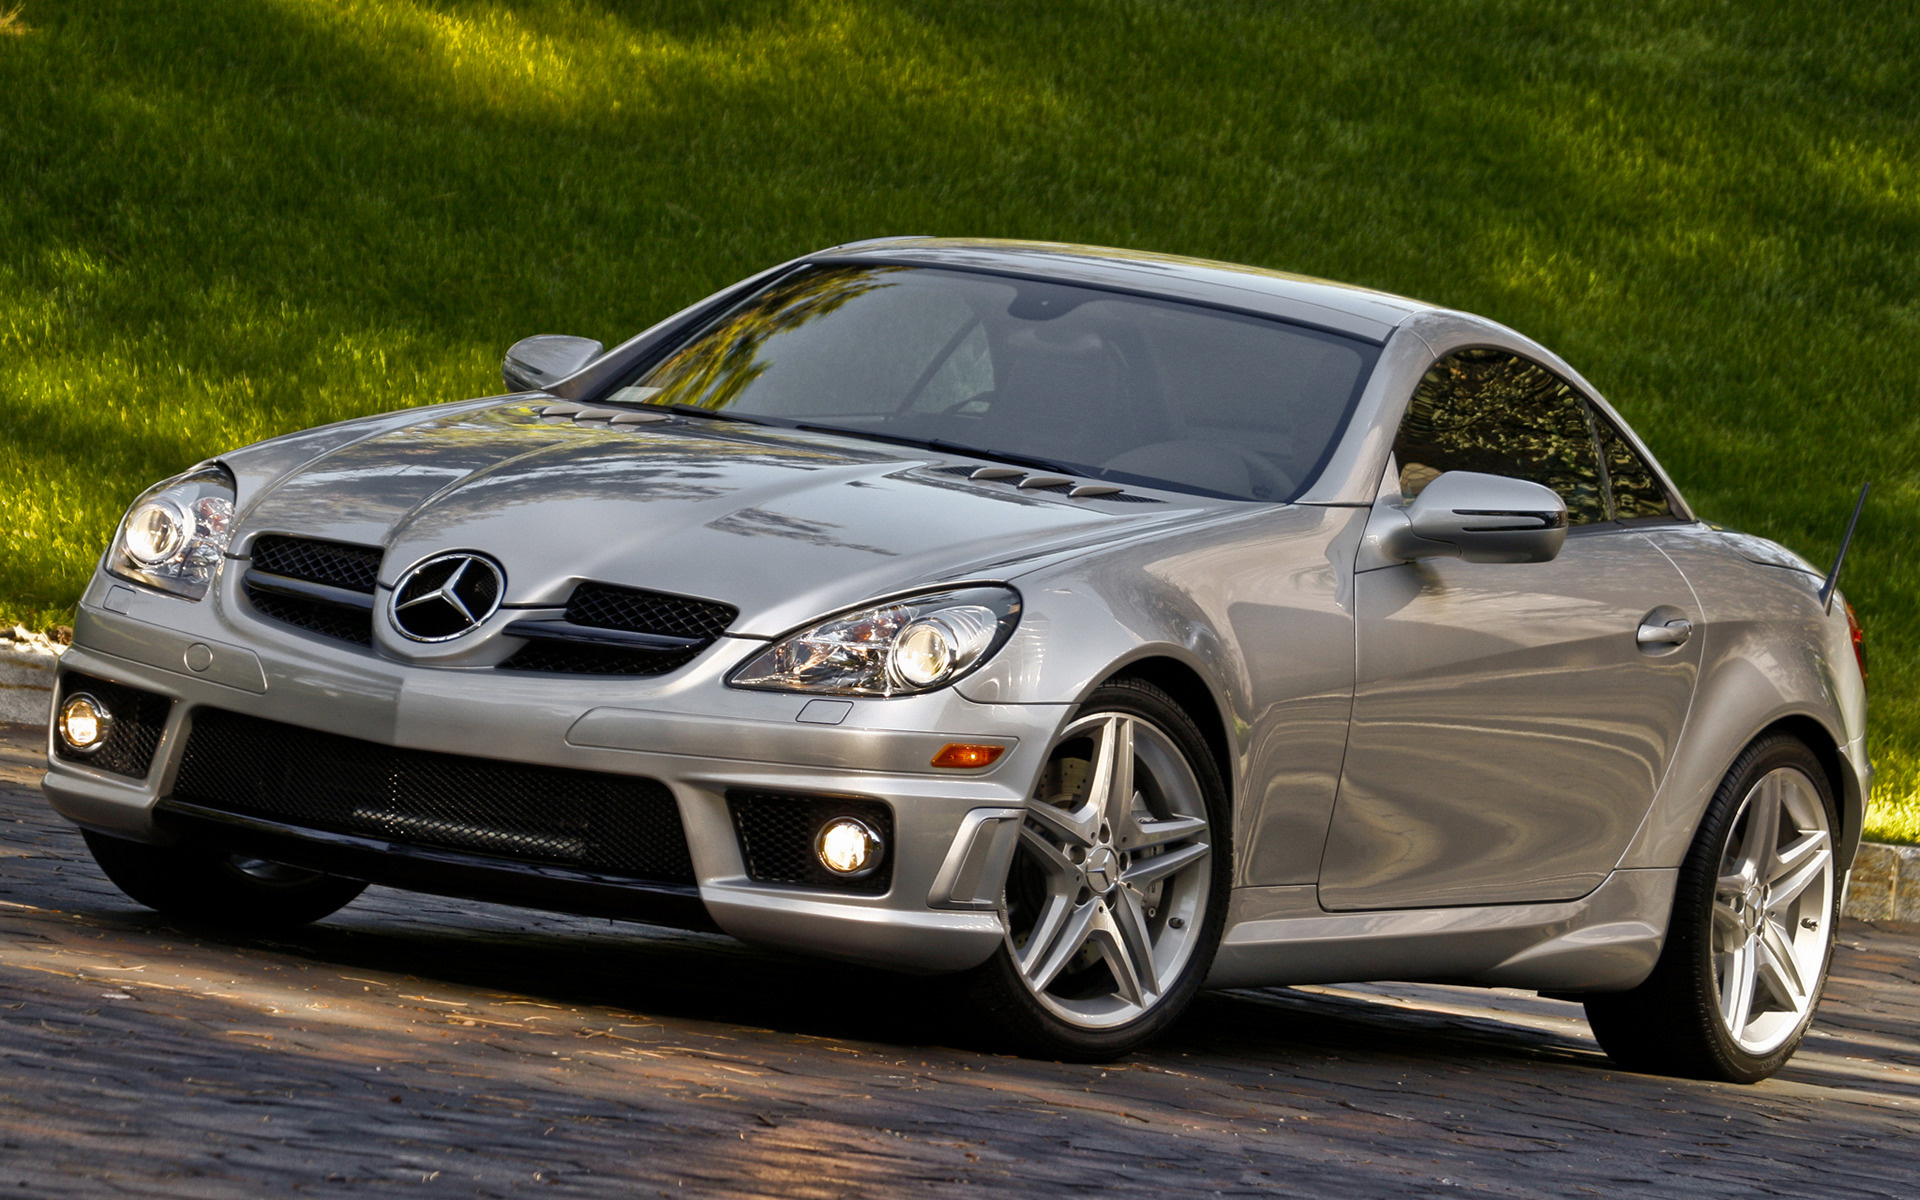 2008 mercedes benz slk 55 amg us wallpapers and hd. Black Bedroom Furniture Sets. Home Design Ideas